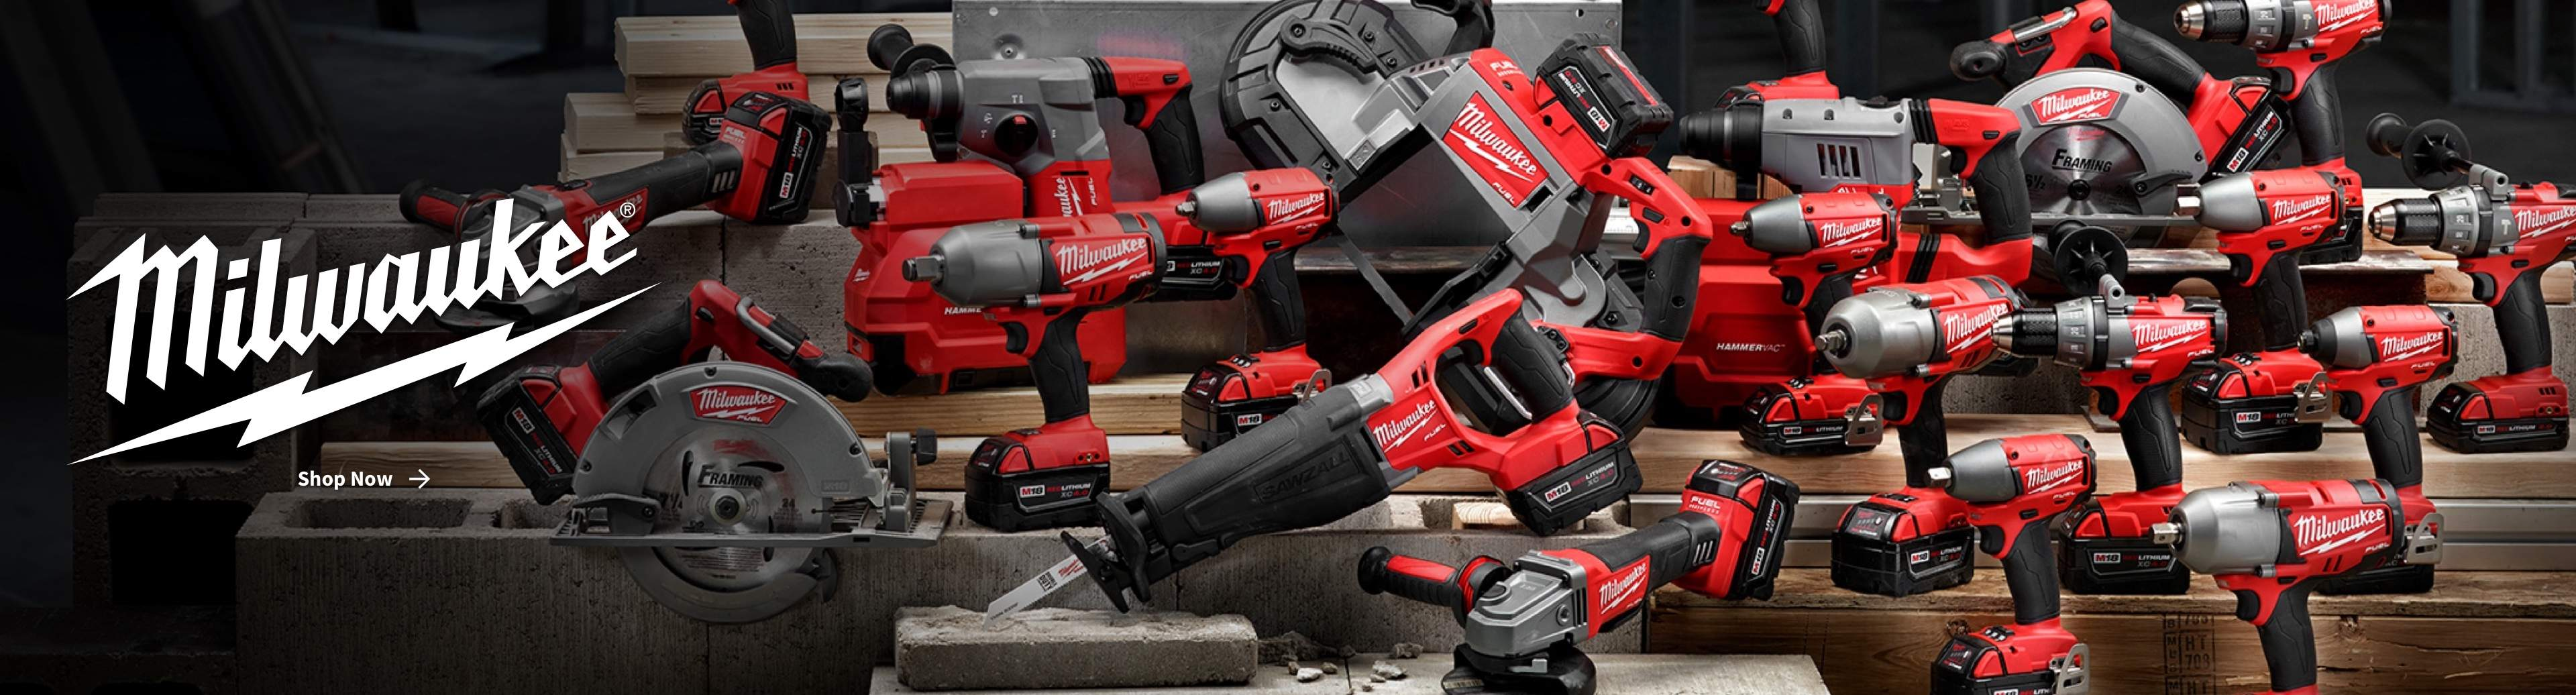 Milwaukee power tools - click to Shop Now